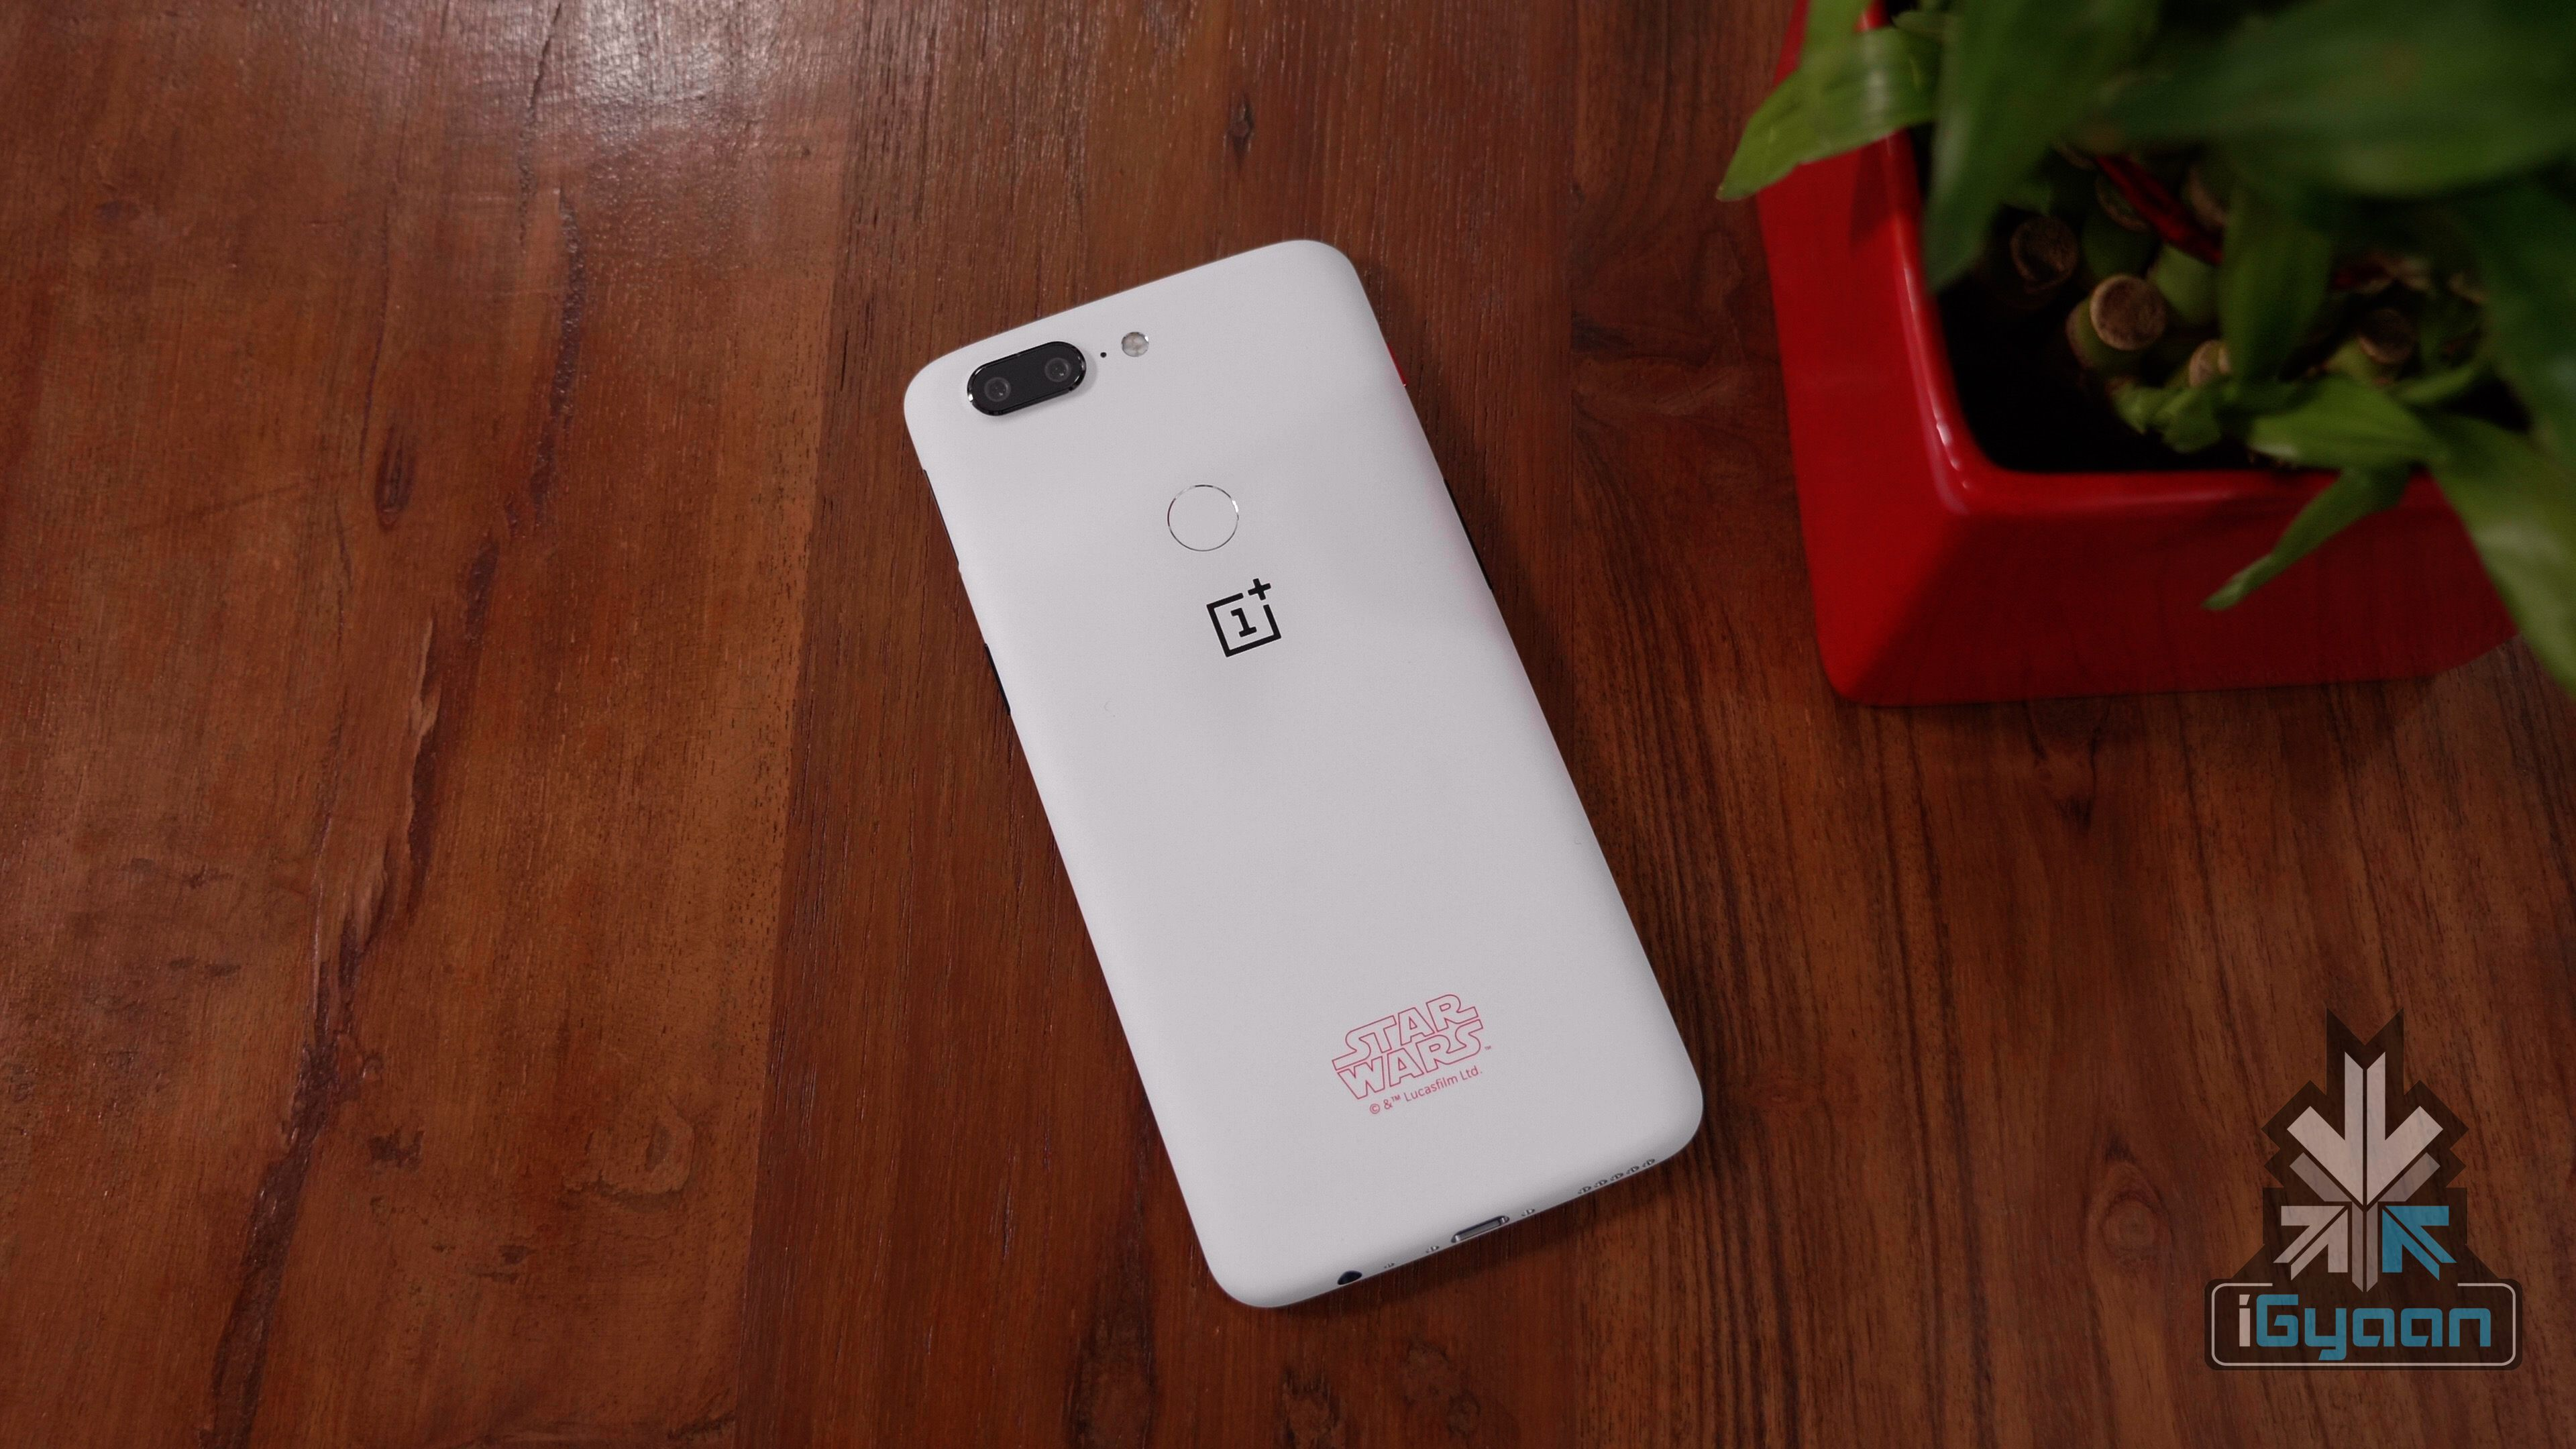 OnePlus 6 teased to be waterproof, camera samples posted online